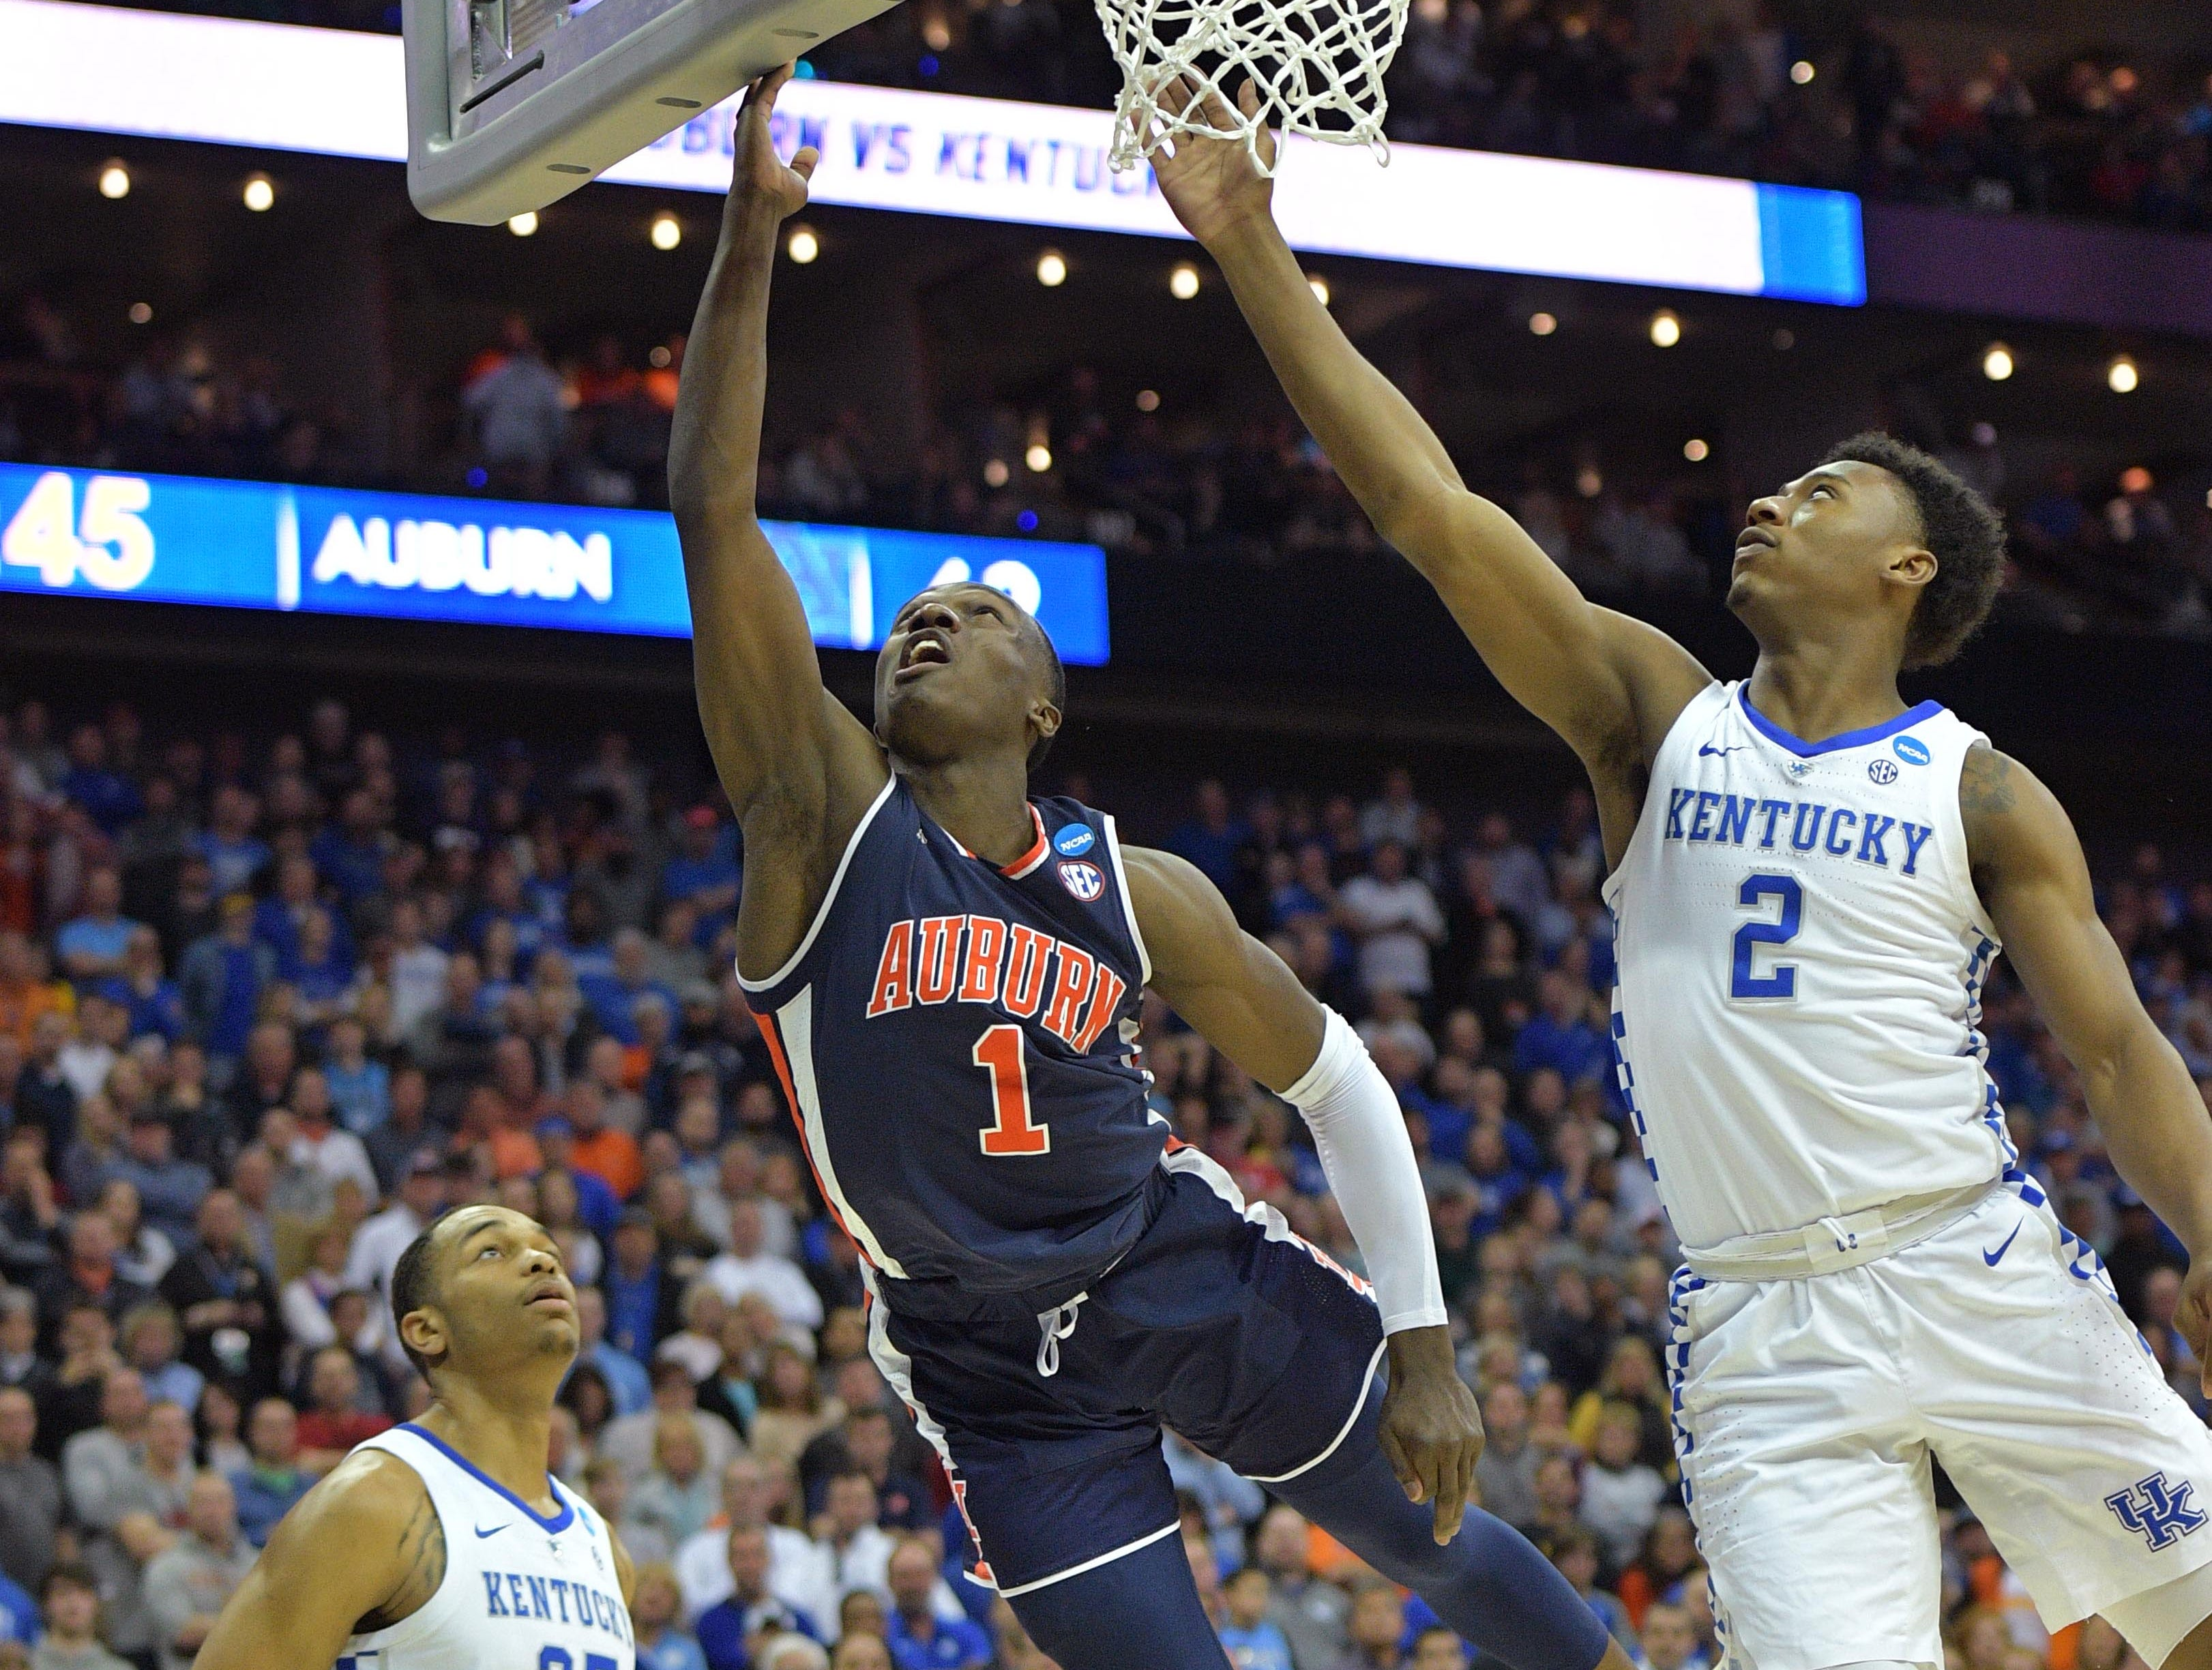 Mar 31, 2019; Kansas City, MO, United States; Auburn Tigers guard Jared Harper (1) shoots against Kentucky Wildcats guard Ashton Hagans (2) during overtime in the championship game of the midwest regional of the 2019 NCAA Tournament at Sprint Center. Mandatory Credit: Denny Medley-USA TODAY Sports